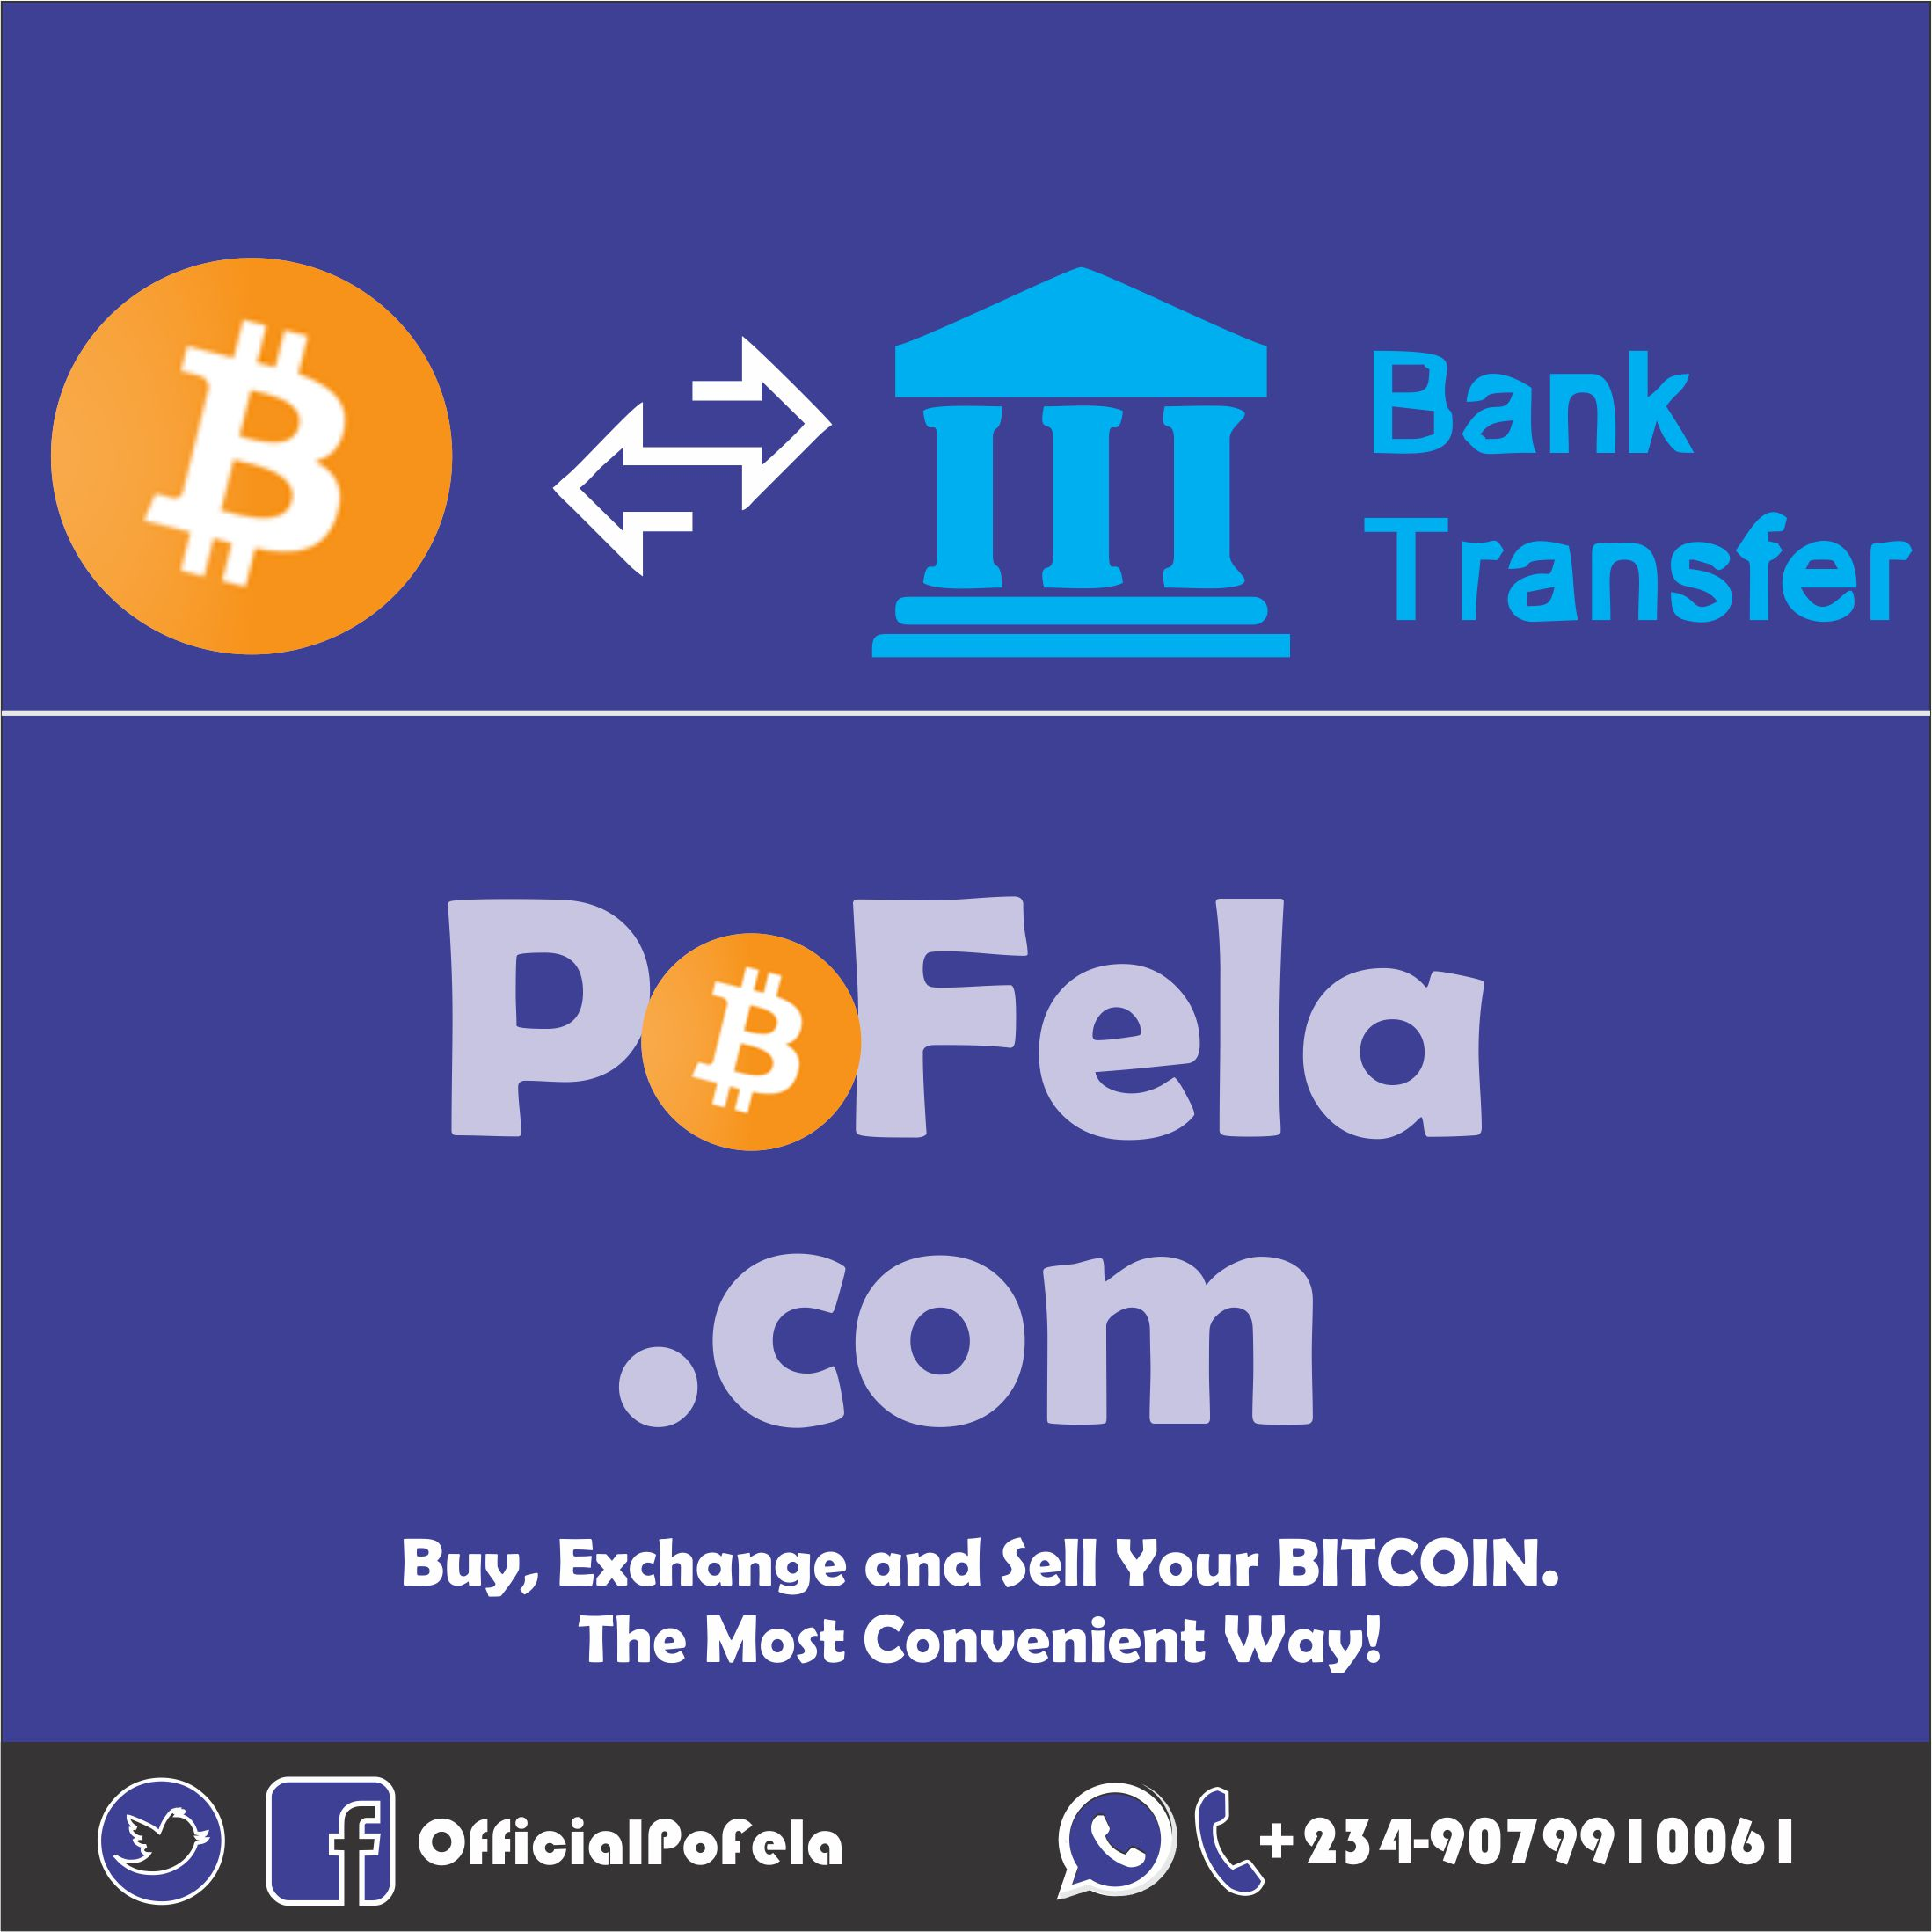 PoFela.com - Buy, Exchange and Sell Your E-Currency The Most Convenient Way